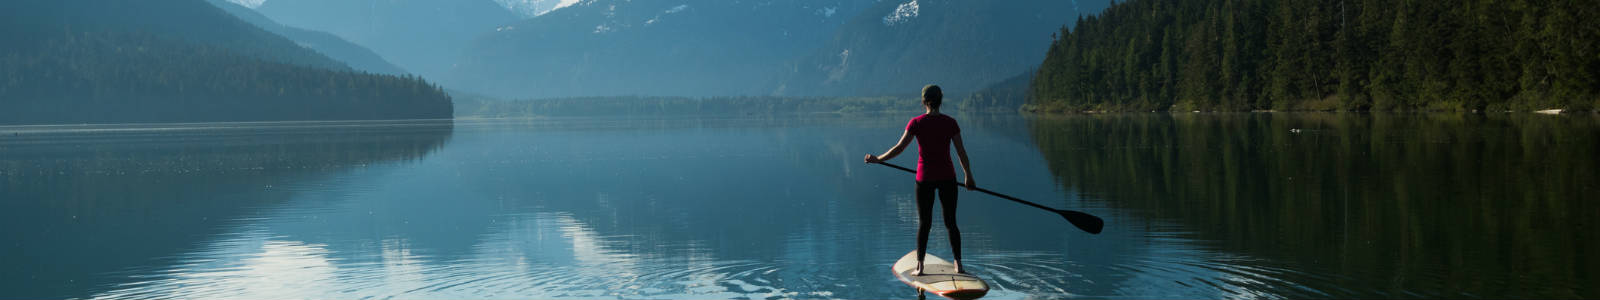 Allianz - woman on lake paddleboarding